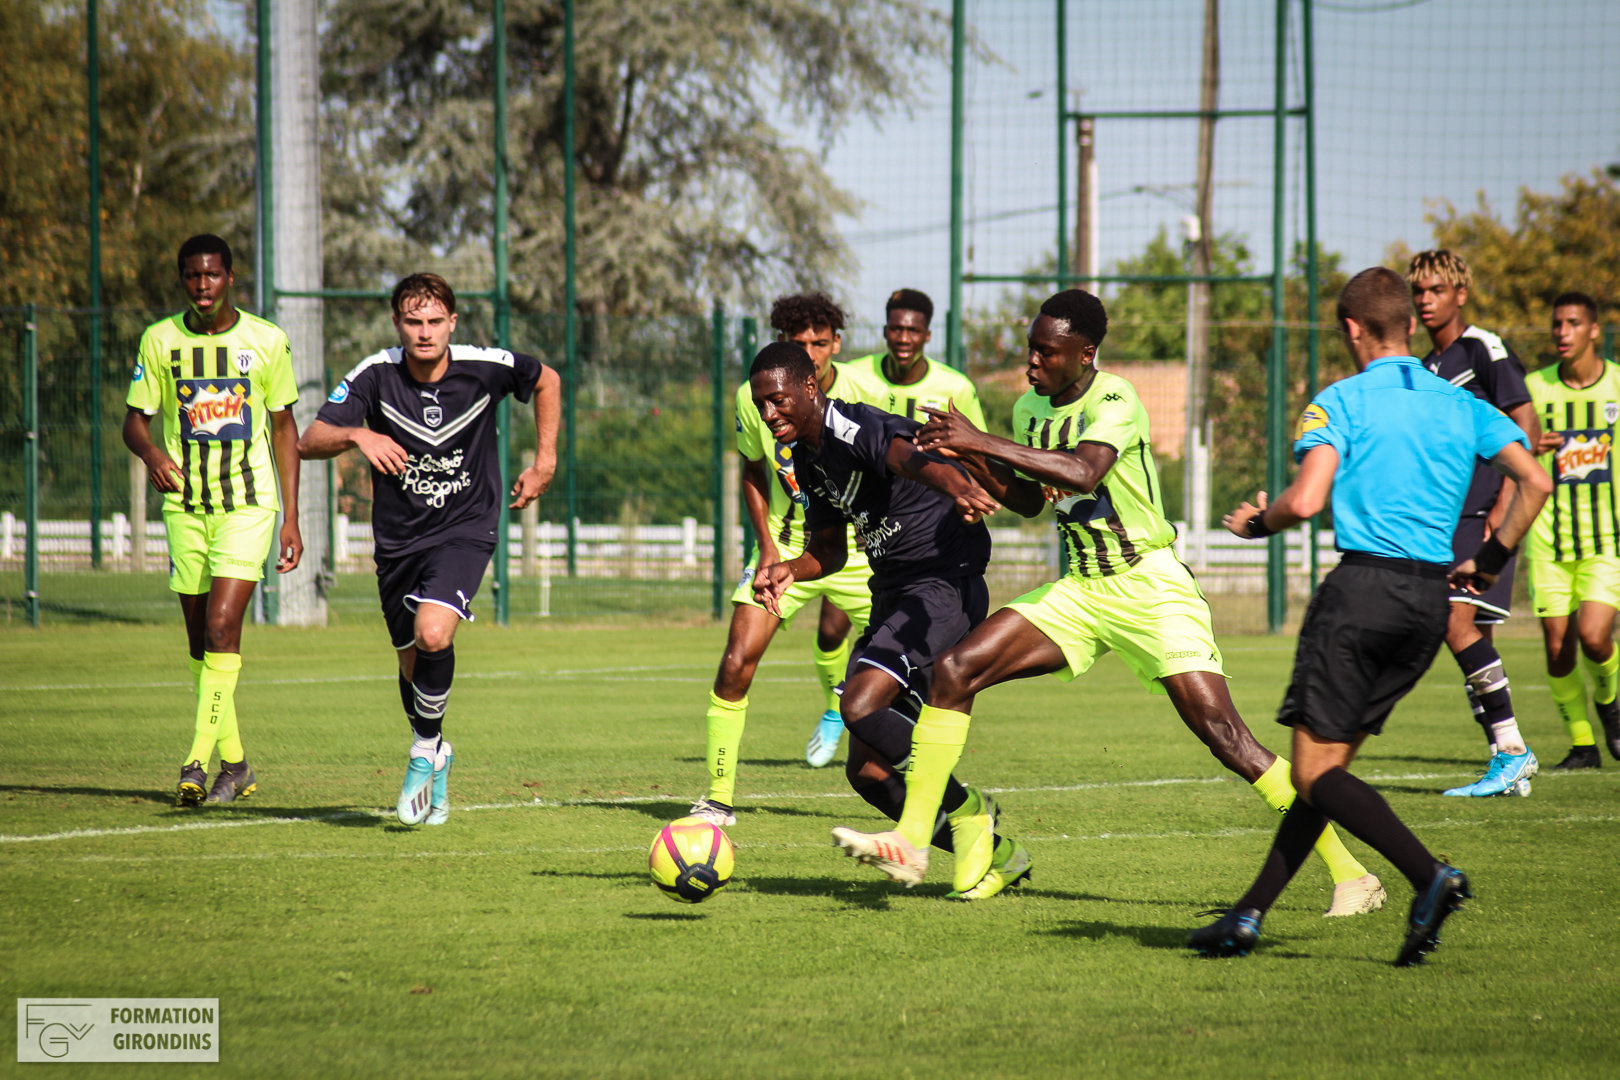 Cfa Girondins : Un programme au complet - Formation Girondins